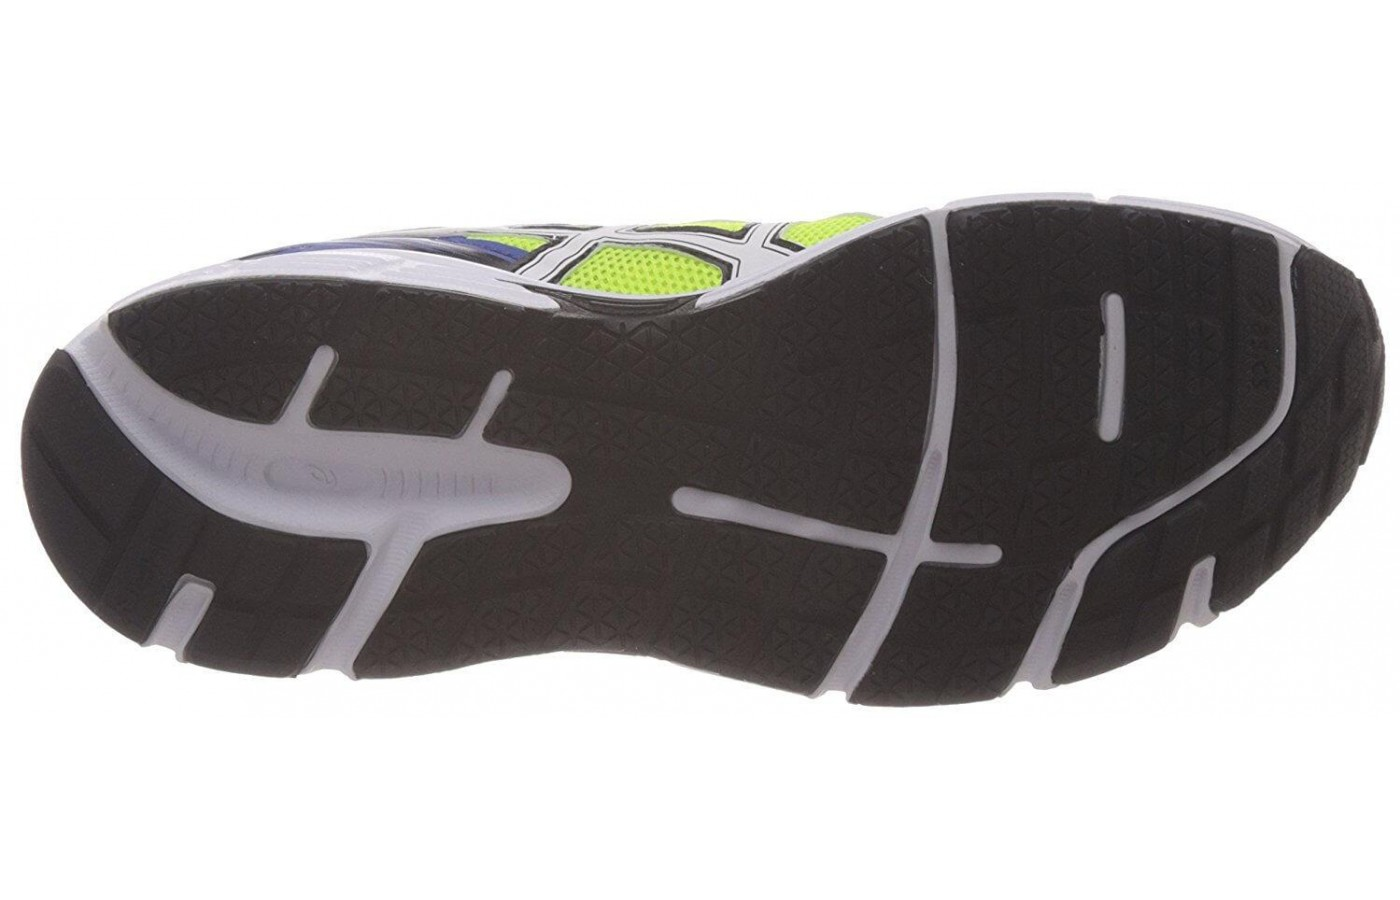 The outsole is made using Asic's patented High Abrasion Rubber for added durability